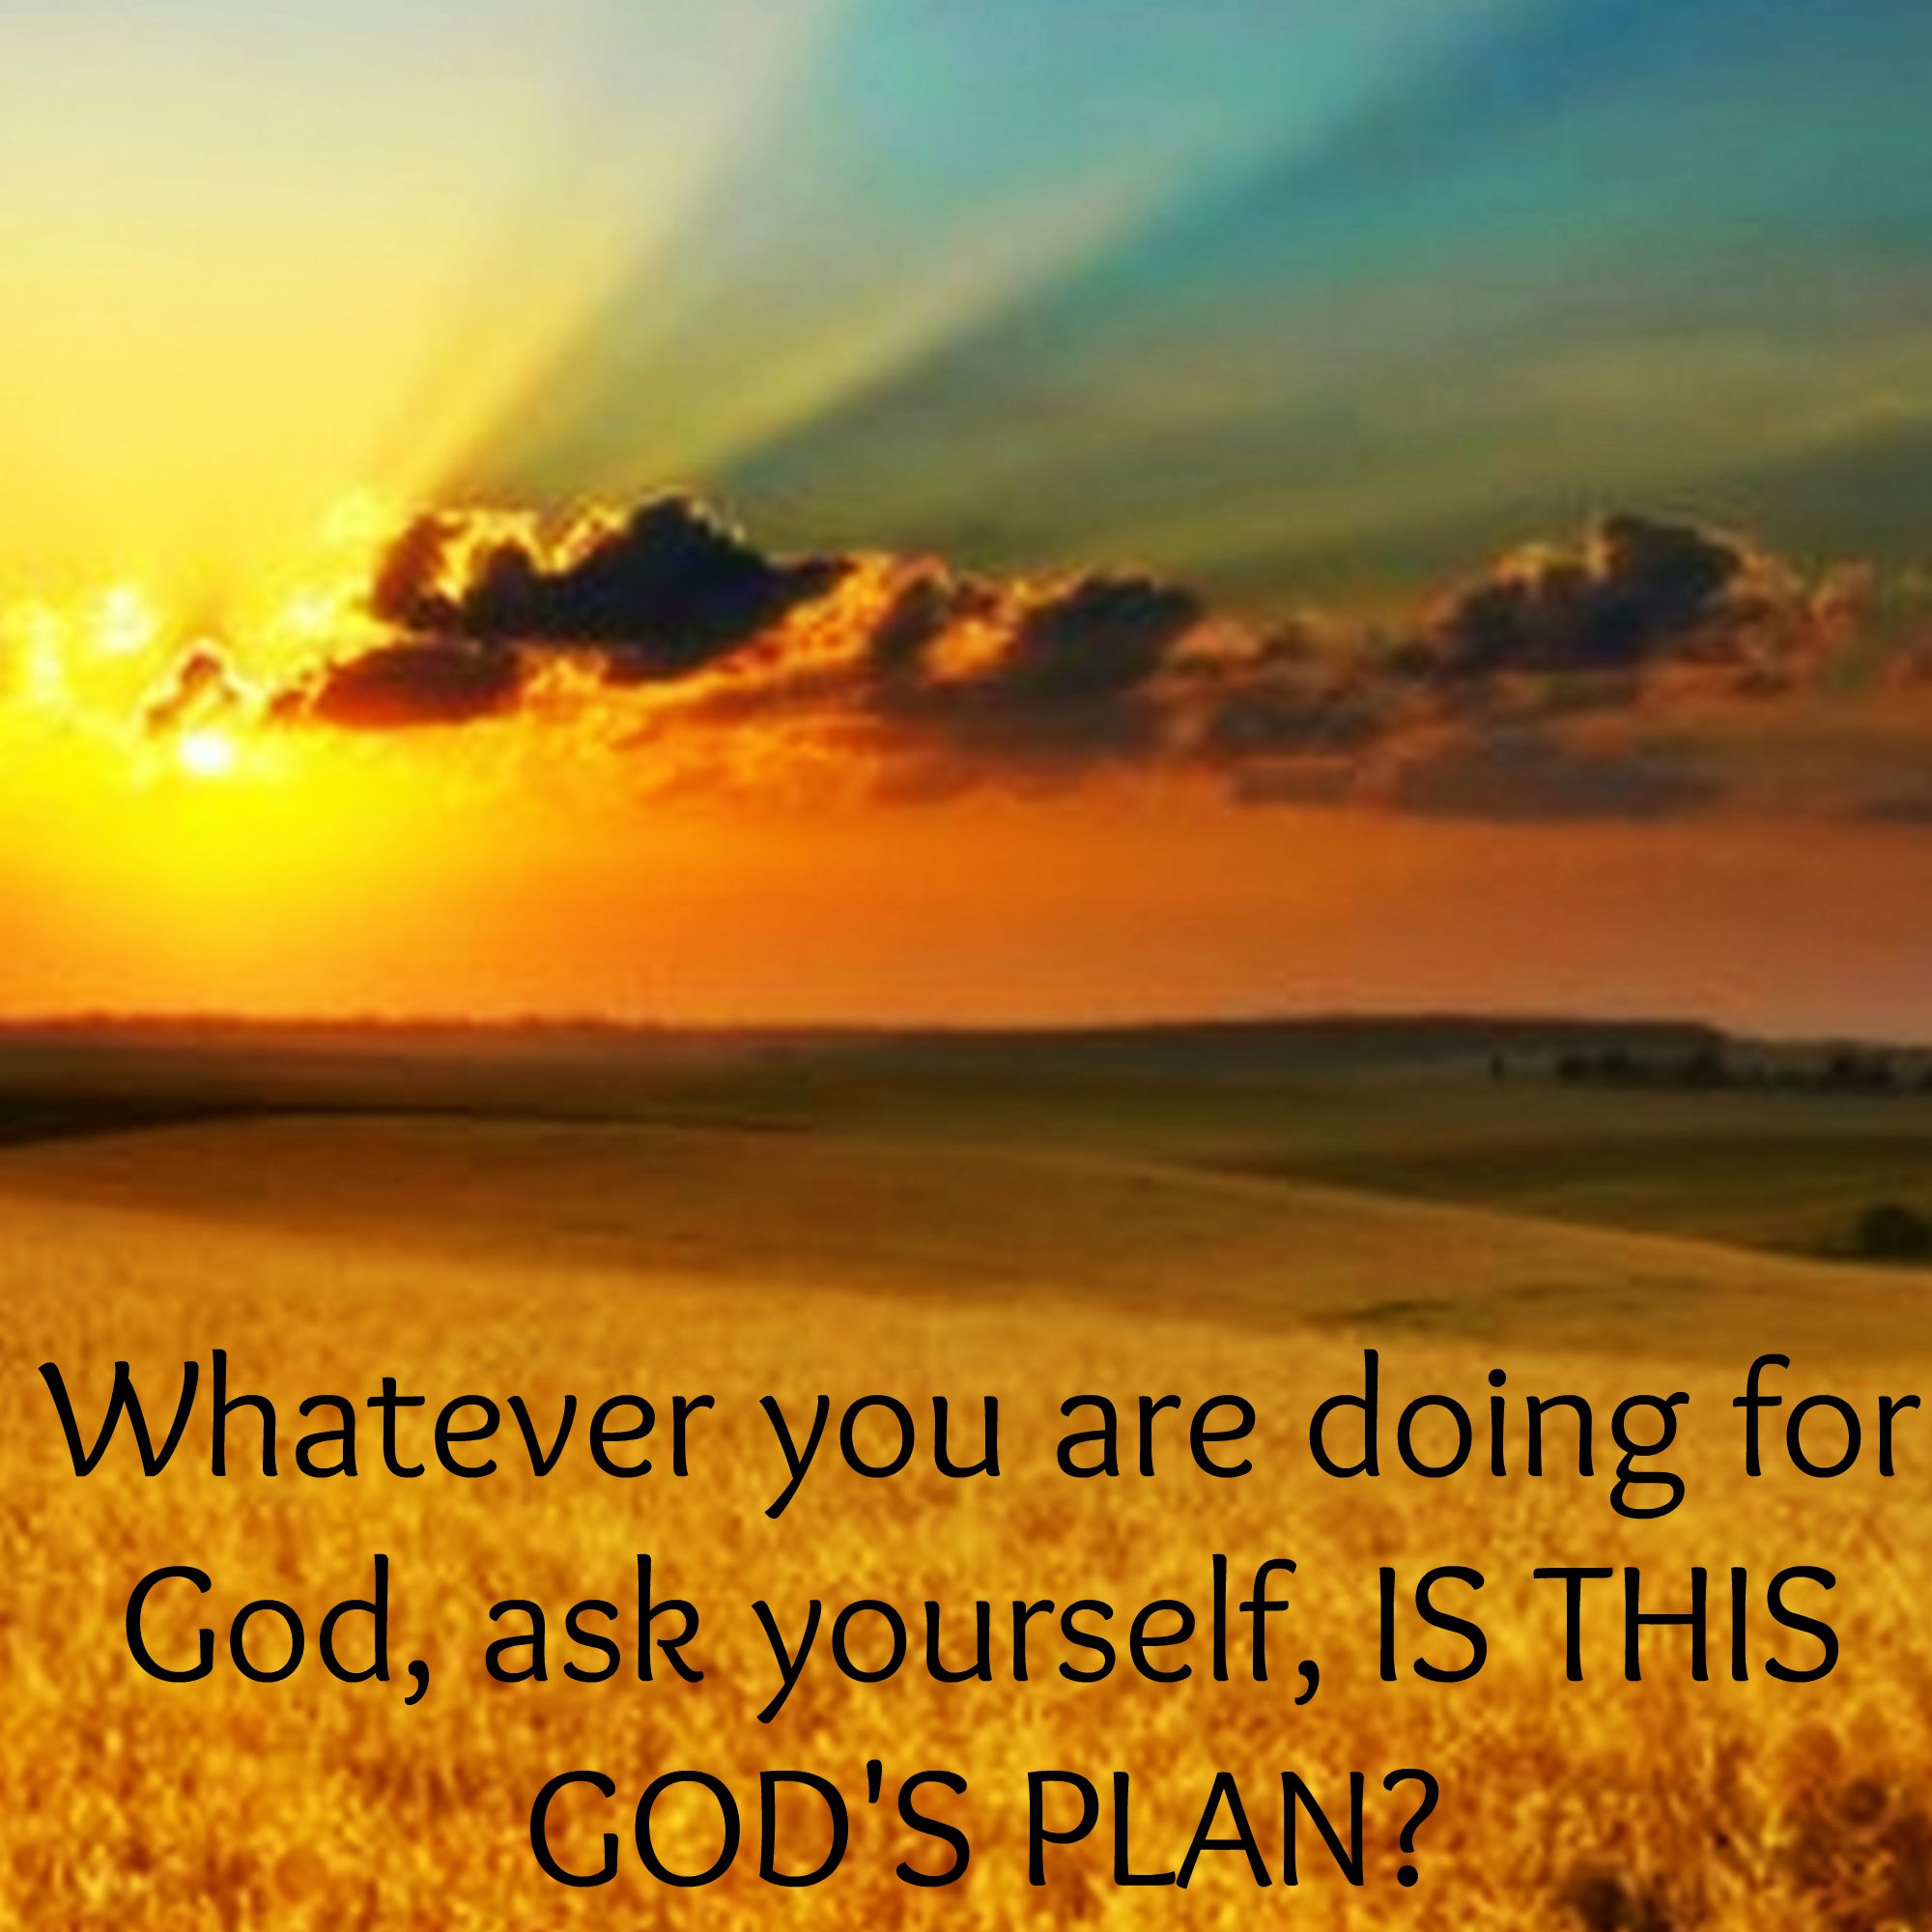 Whatever you are doing for God, ask yourself, IS THIS GOD'S PLAN?